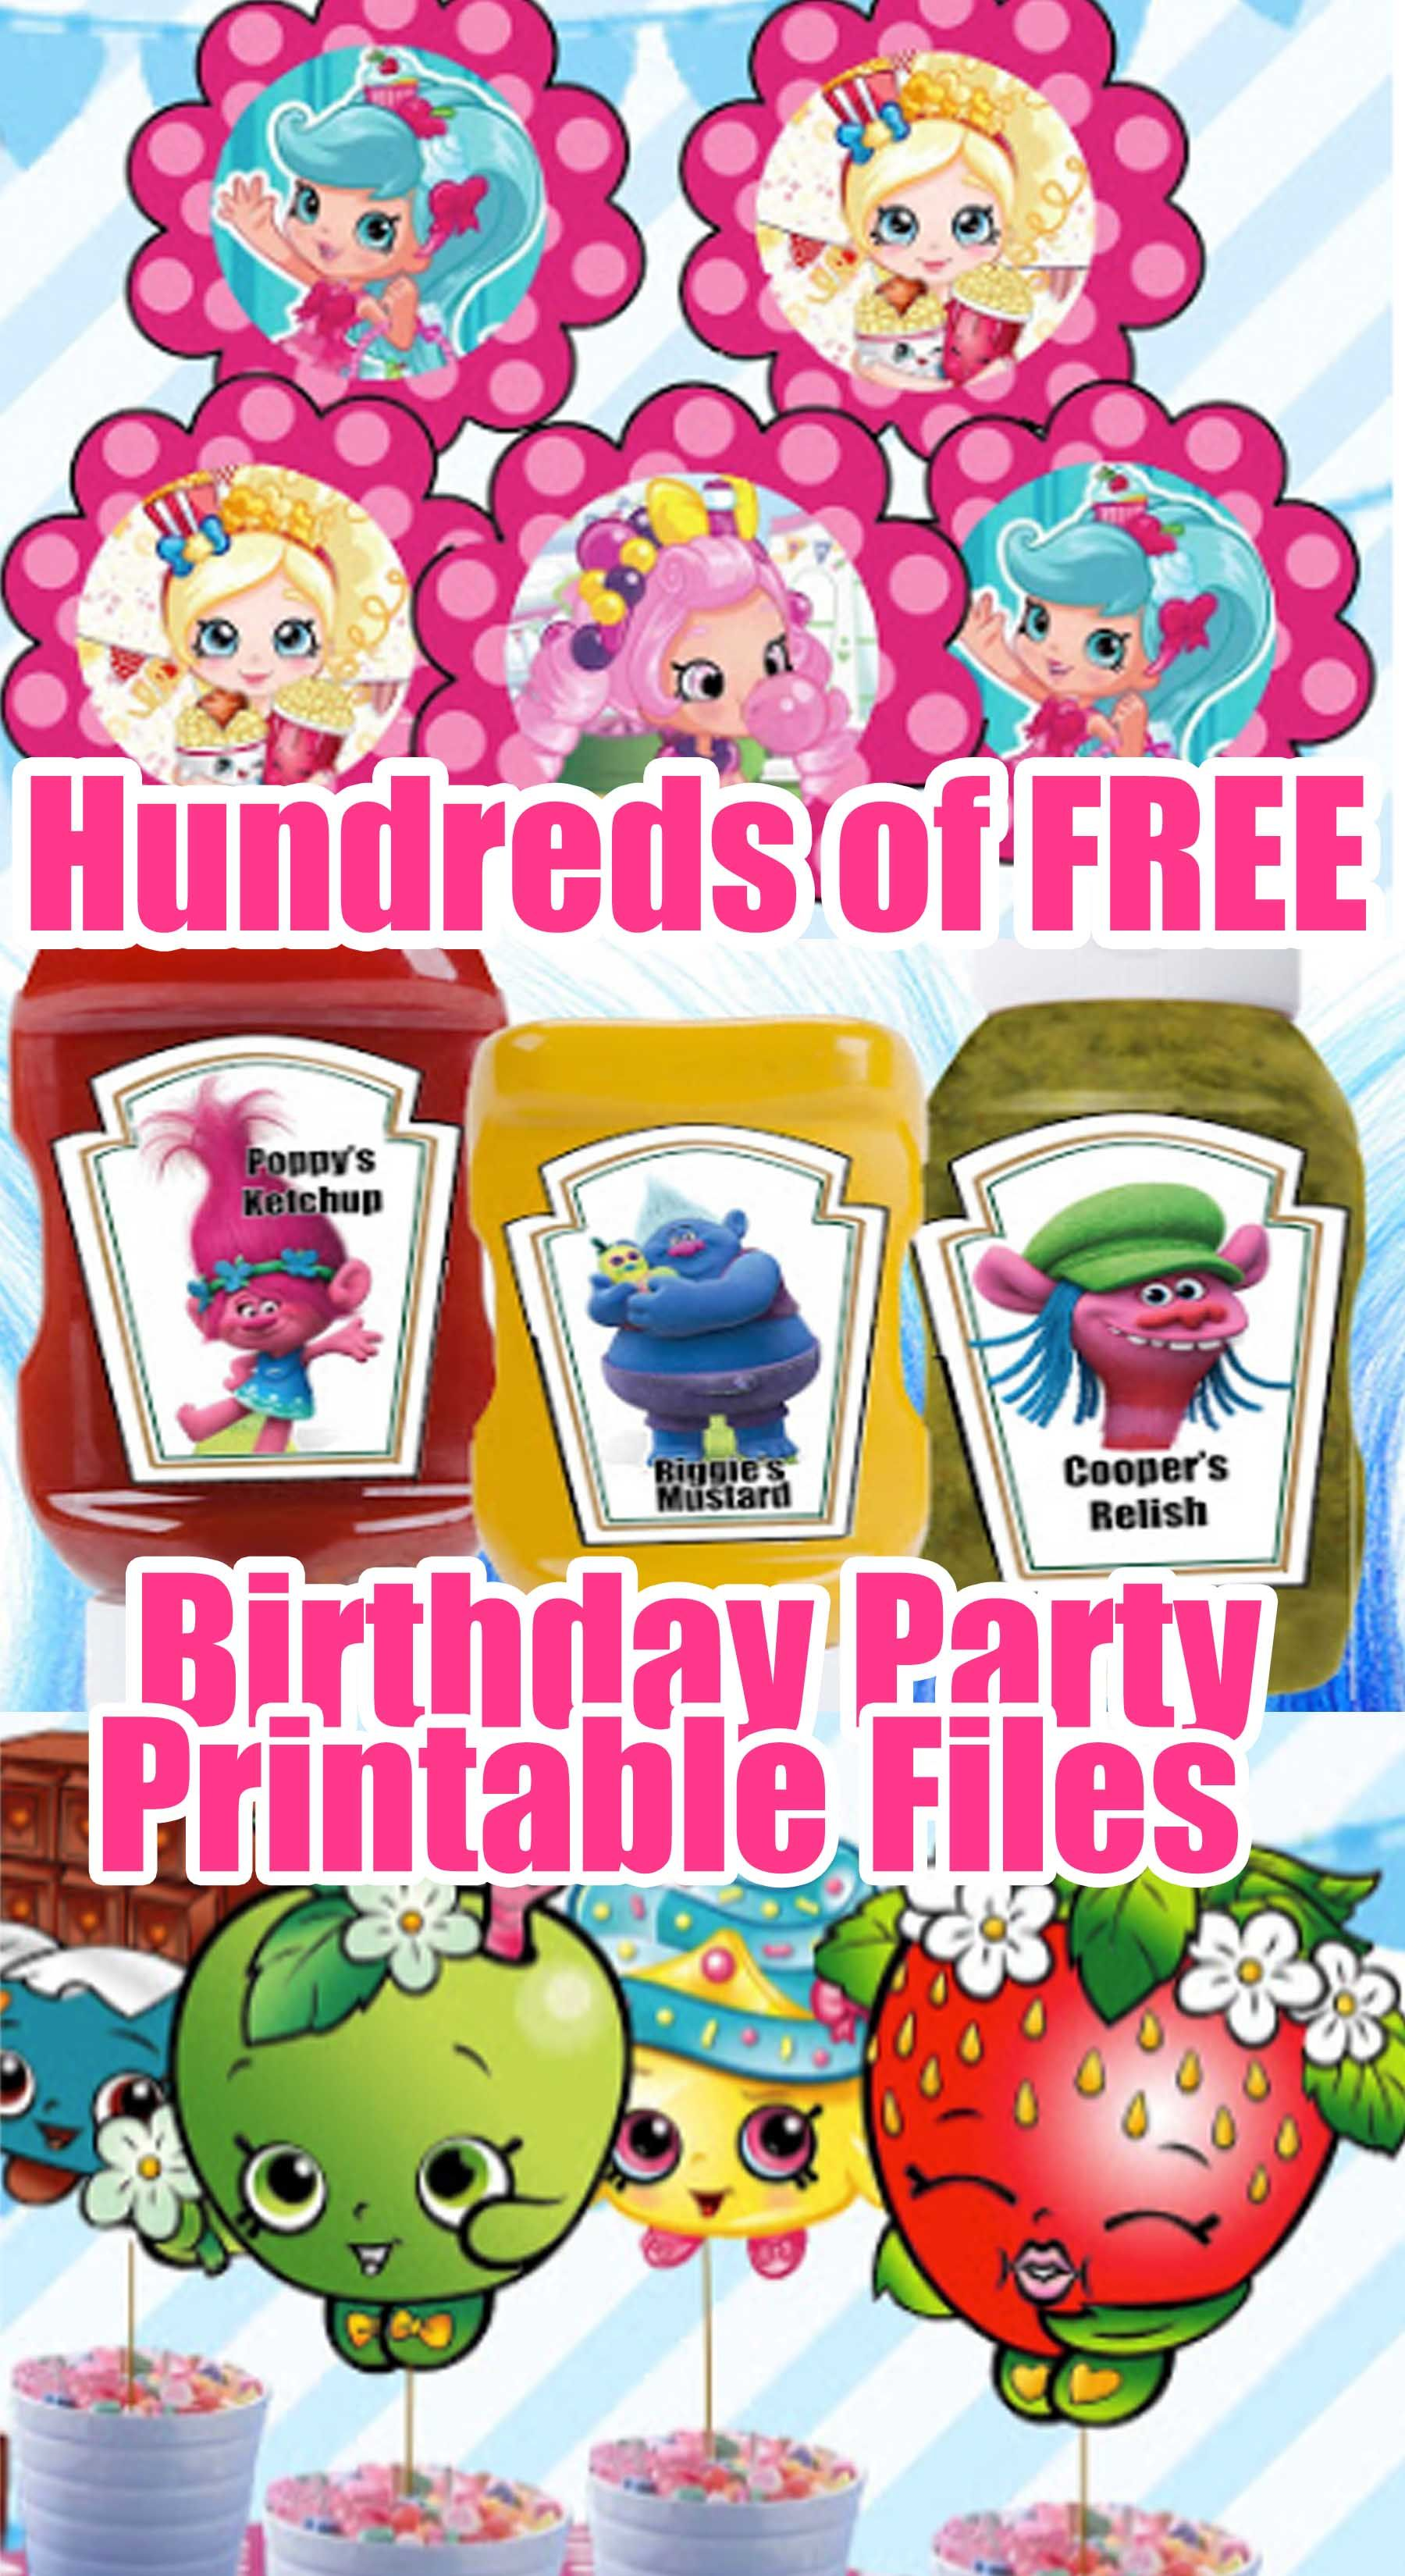 picture relating to Shopkins Birthday Card Printable referred to as 1000's of Free of charge Birthday Celebration Printable Documents Shopkins